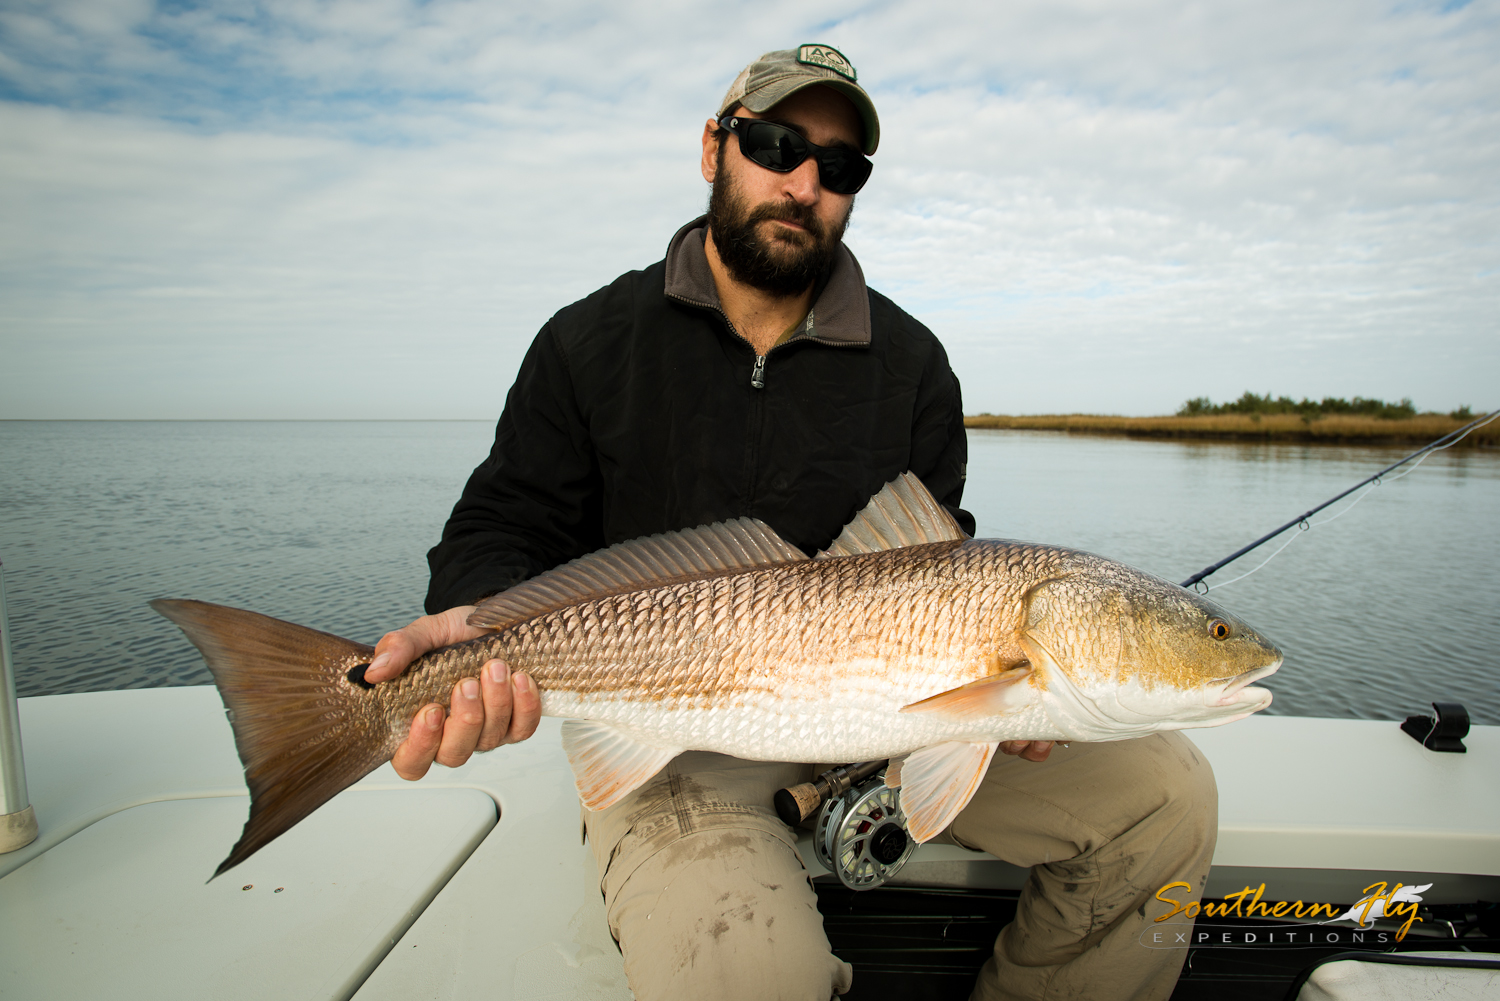 Fly Fishing new orleans louisiana with southern fly expeditions - best fly fishing guide in louisiana